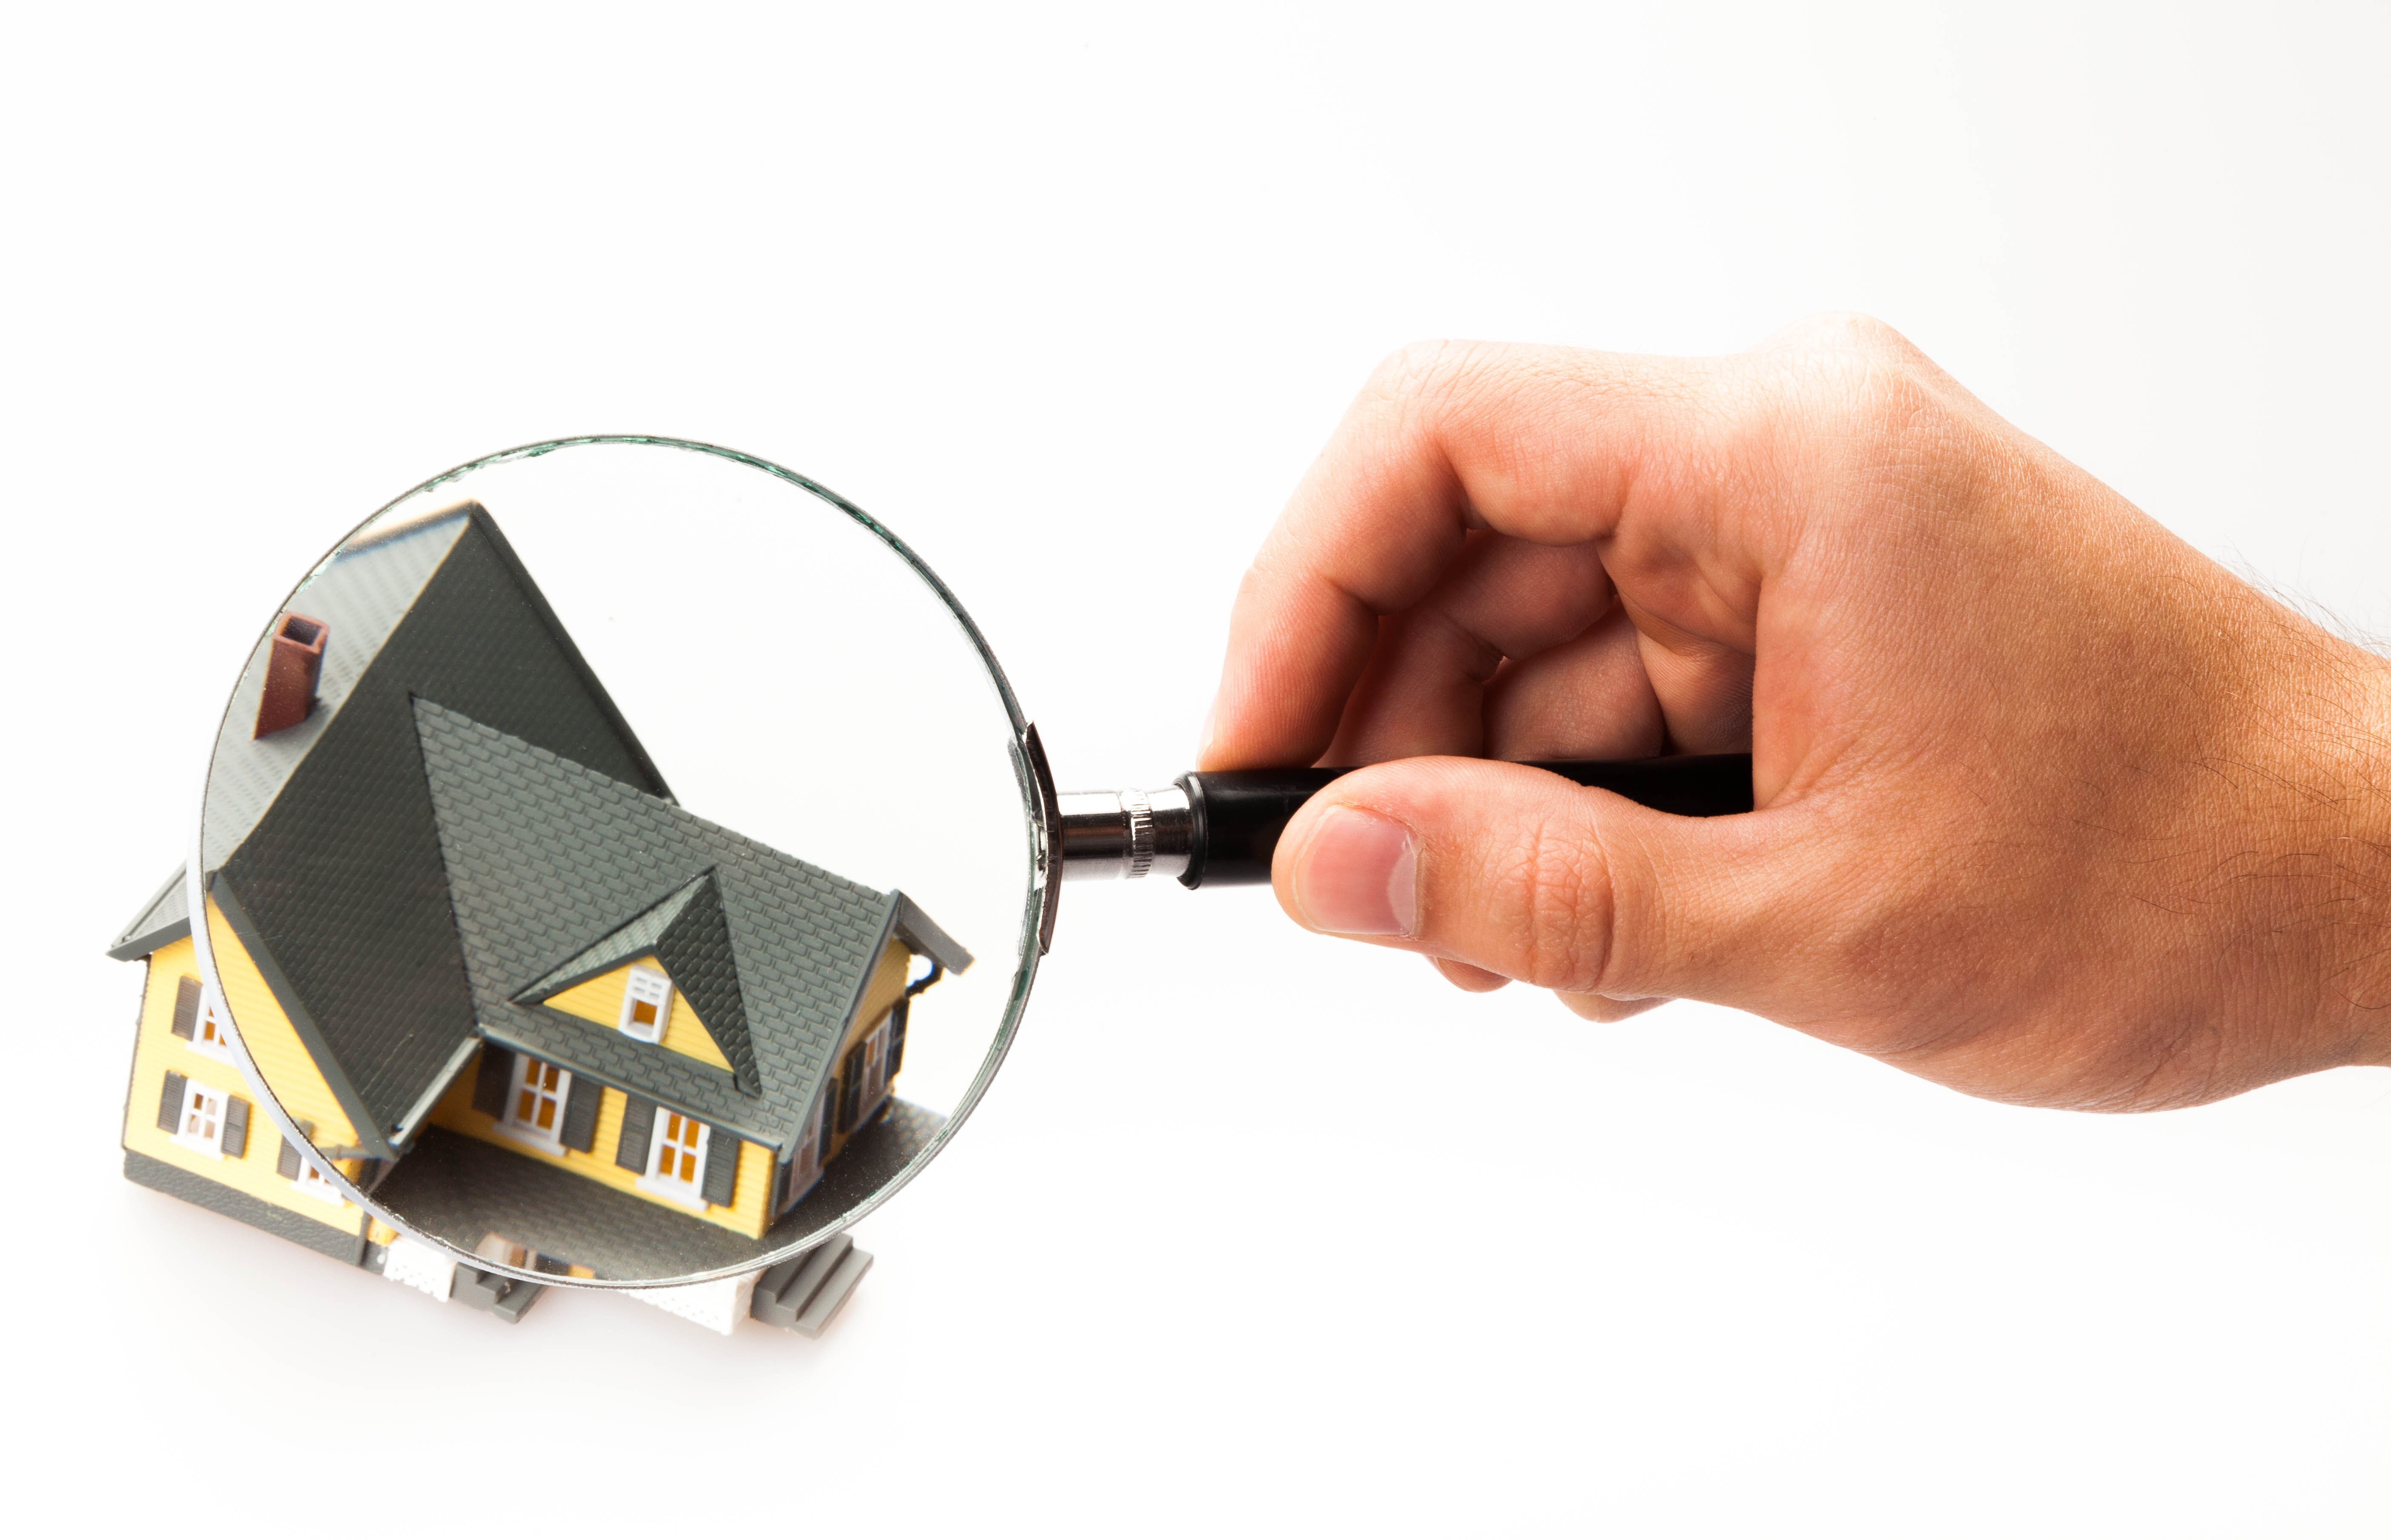 the appraisal is a key part of the home purchase and home sale